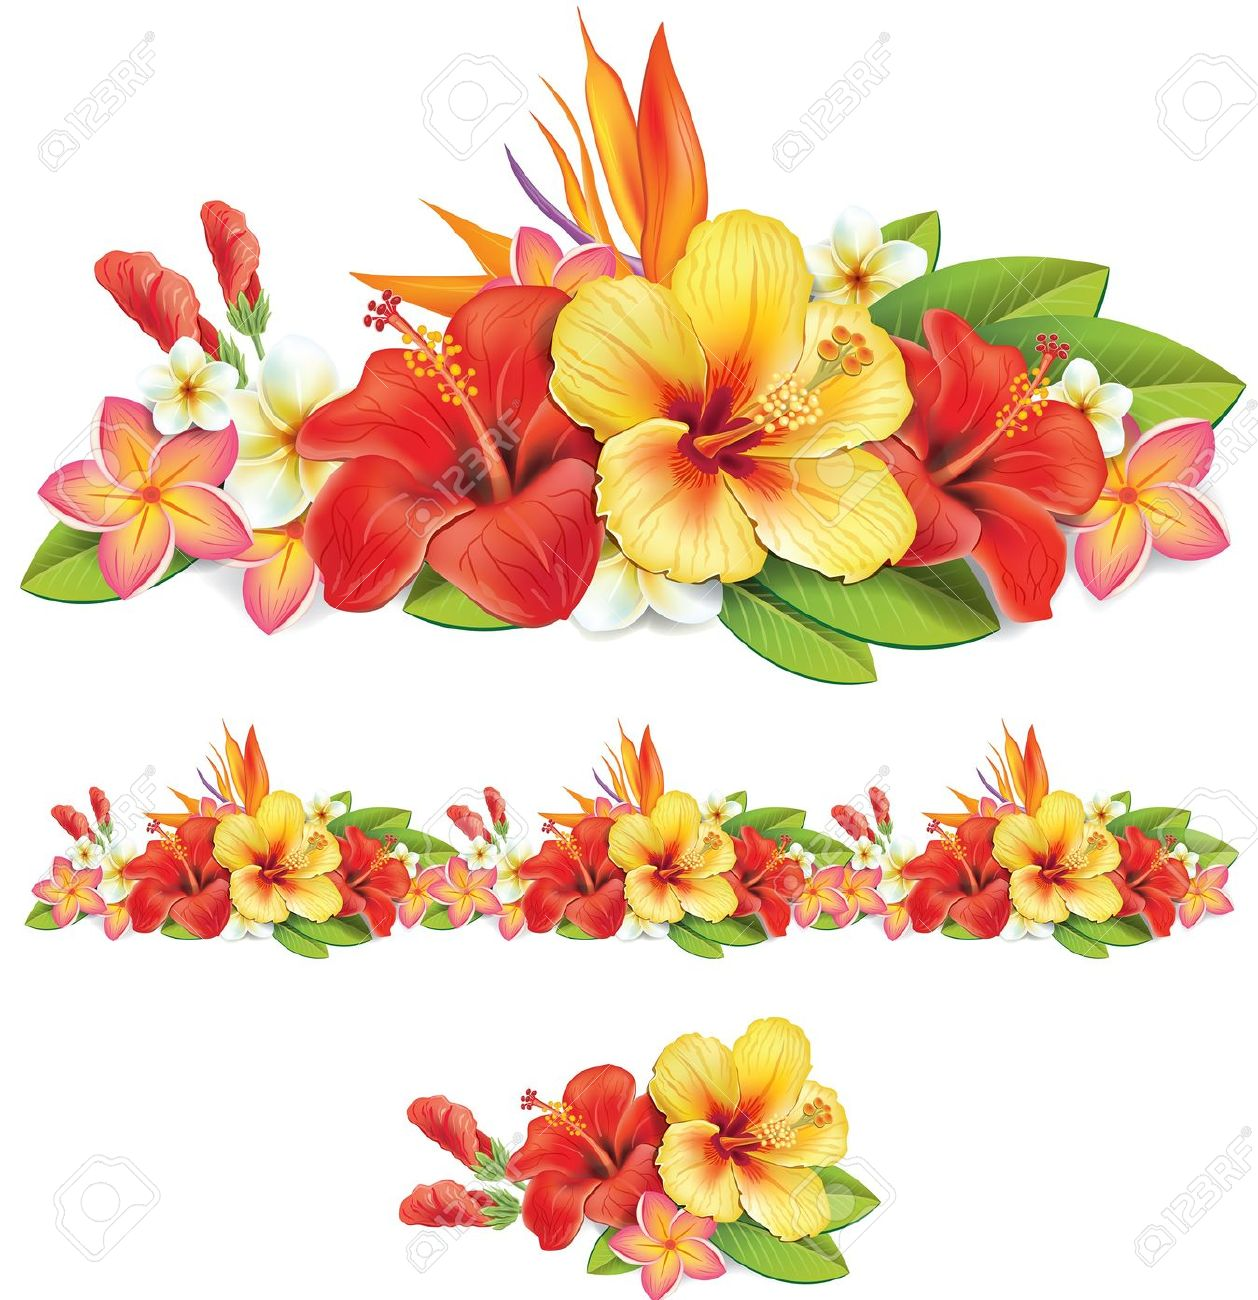 Free pictures of tropical flowers banner free download Garland Of Of Tropical Flowers Royalty Free Cliparts, Vectors, And ... banner free download